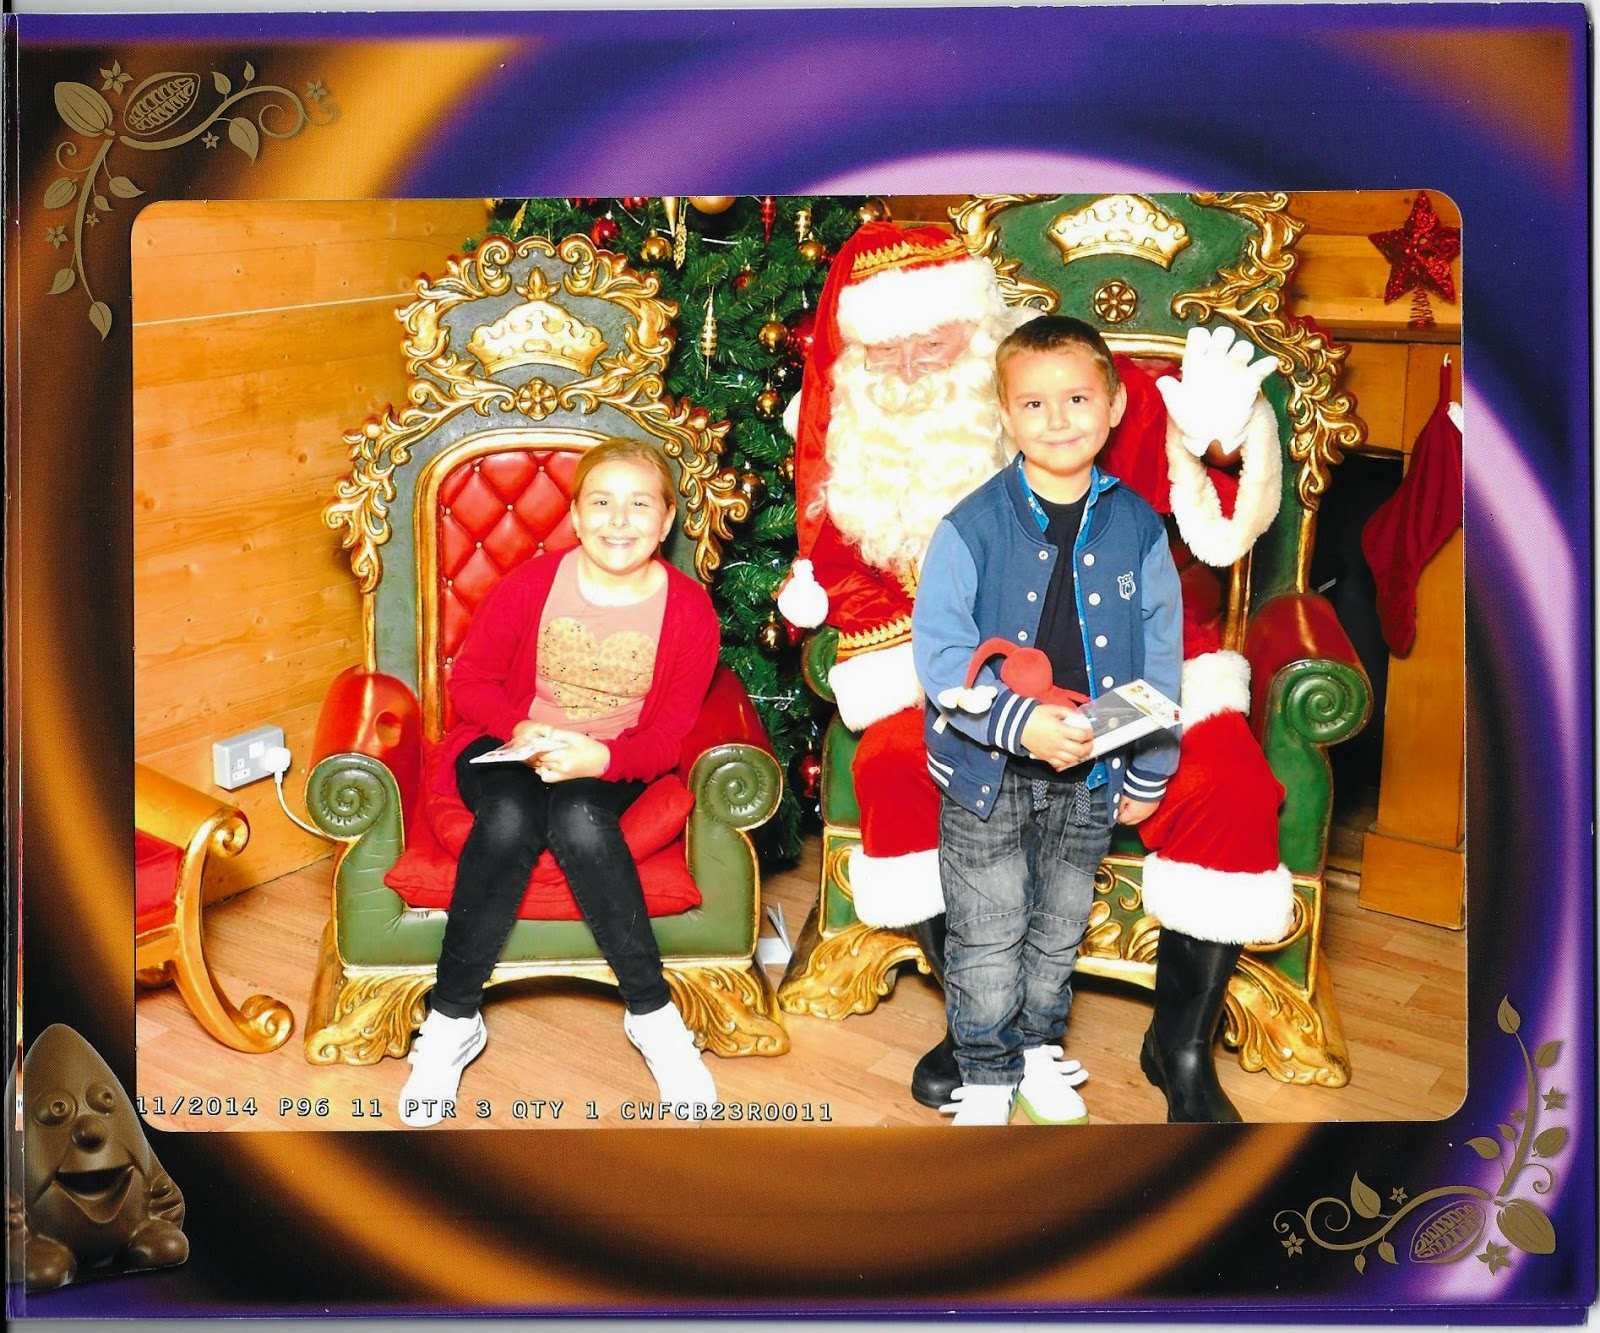 Big Boy and Top Ender with Santa